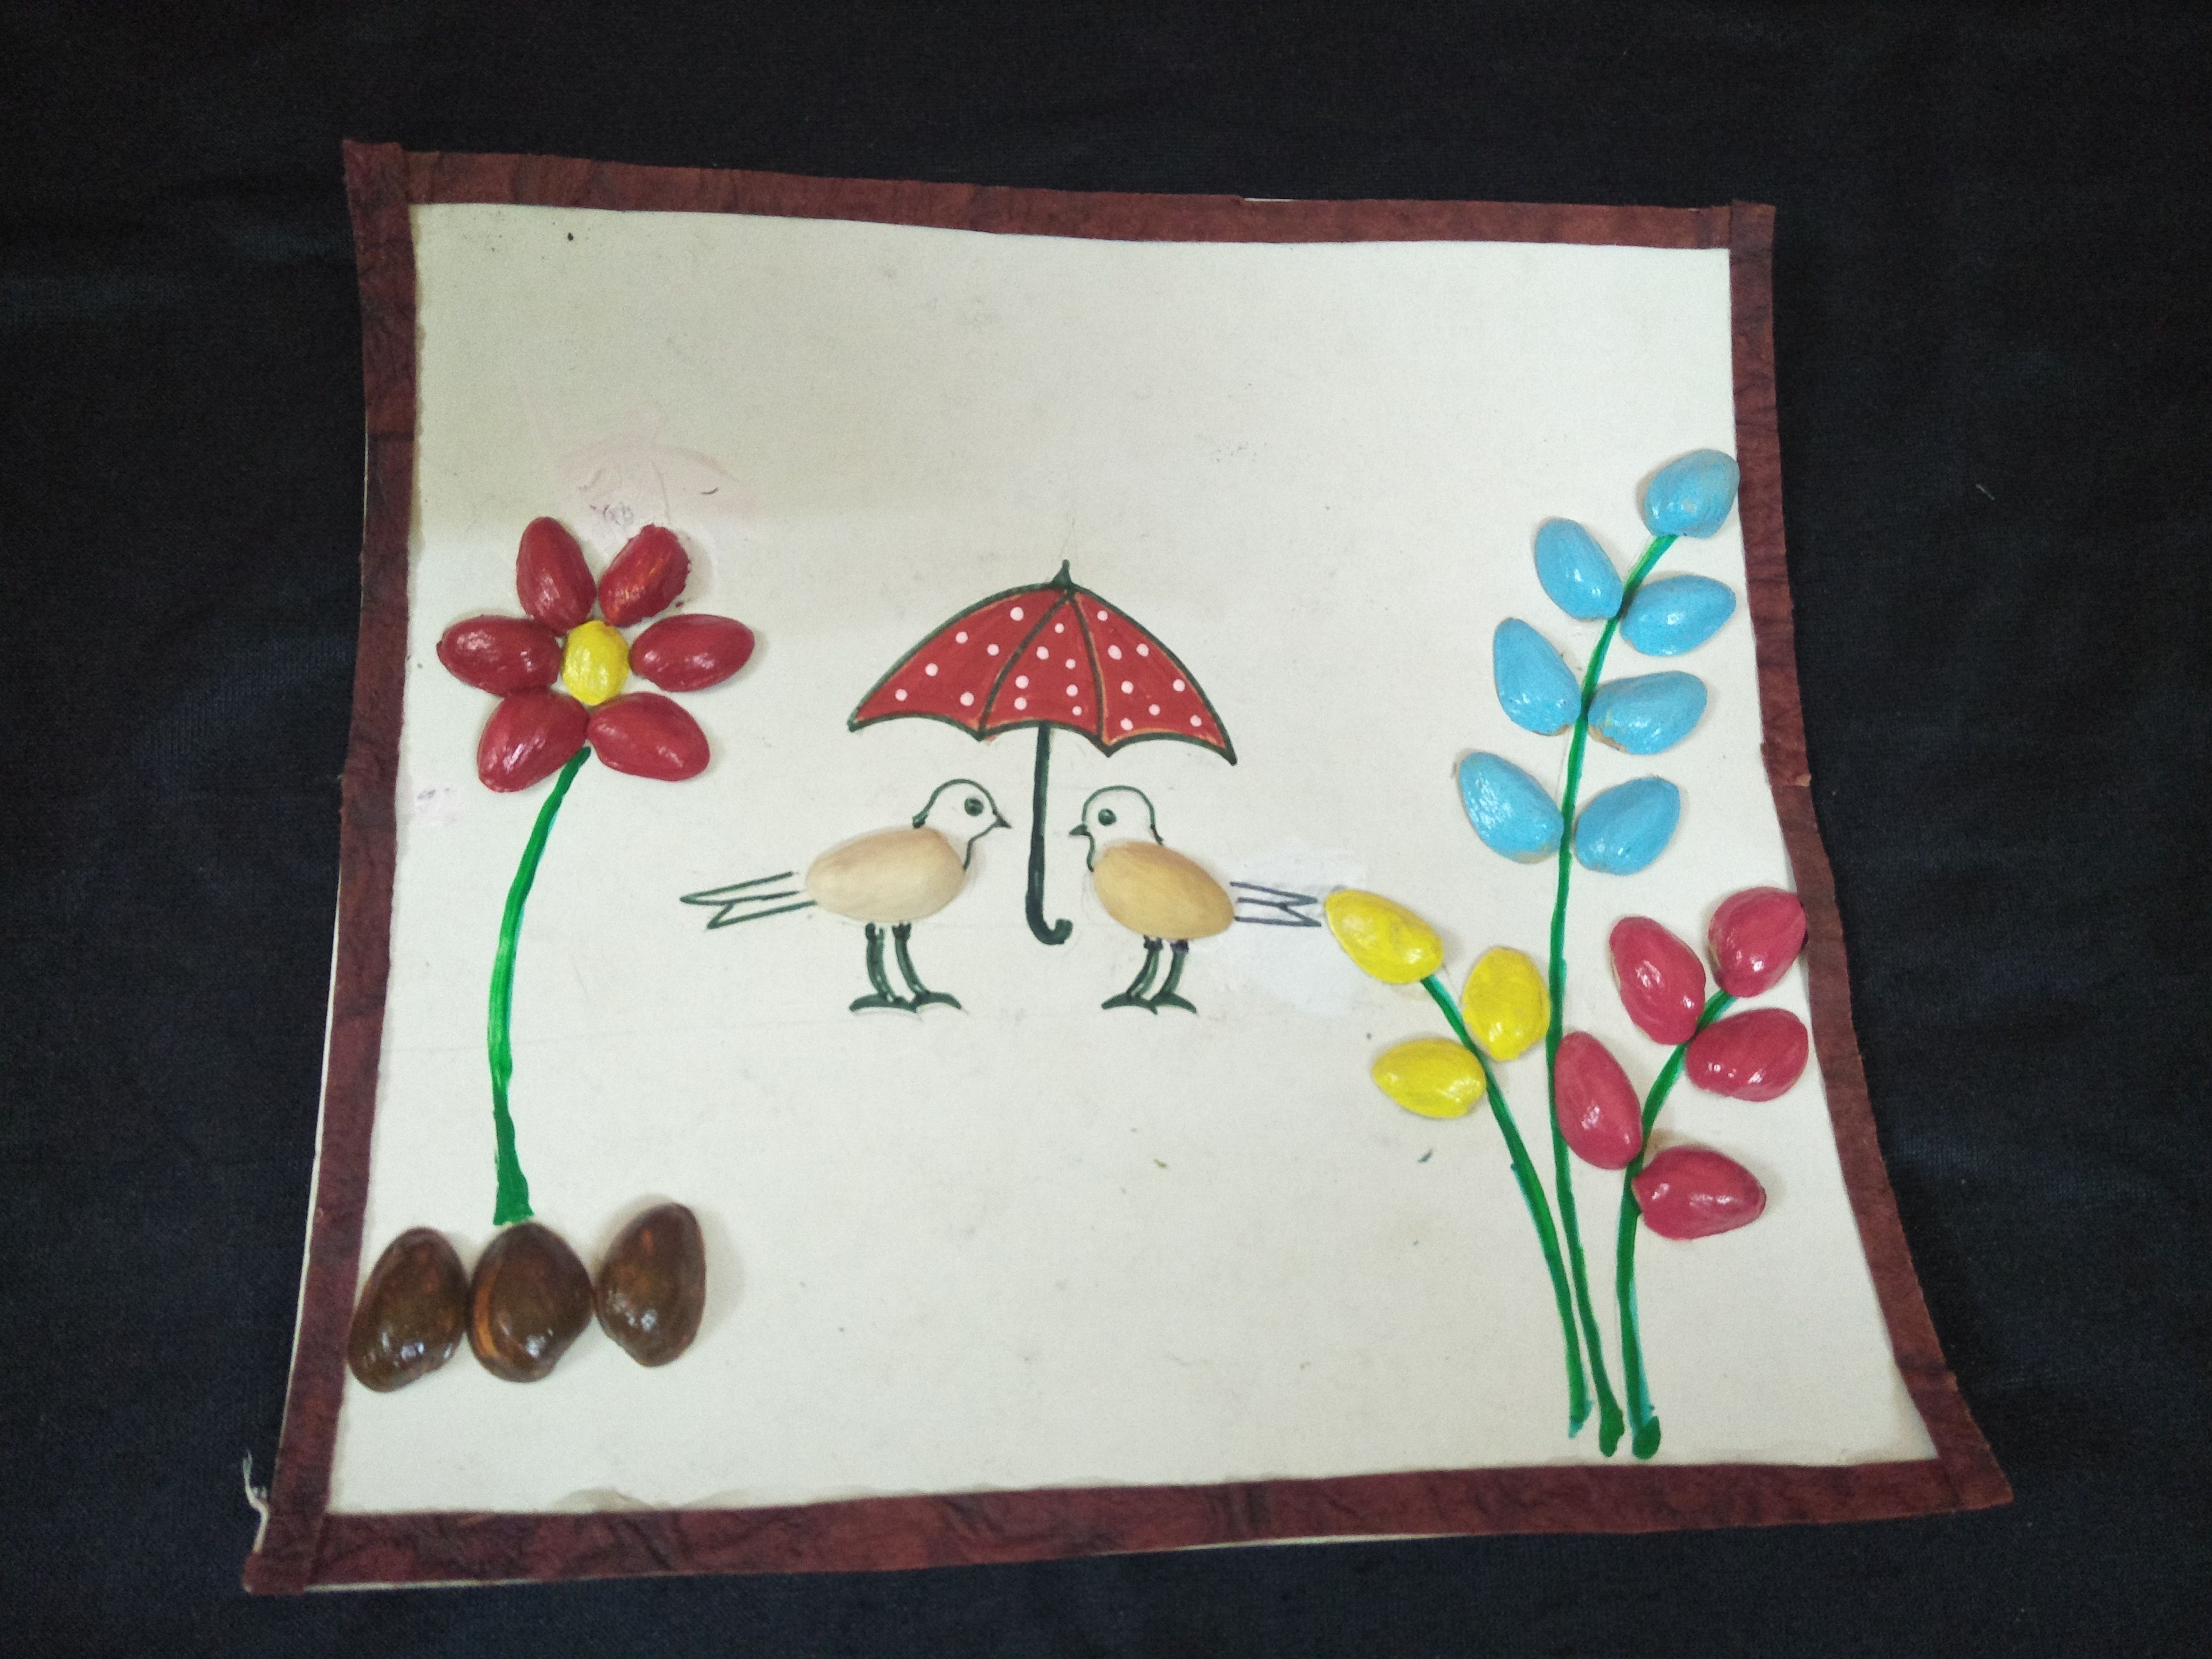 Easy kids crafts using bistha seeds and craft ideas crafts